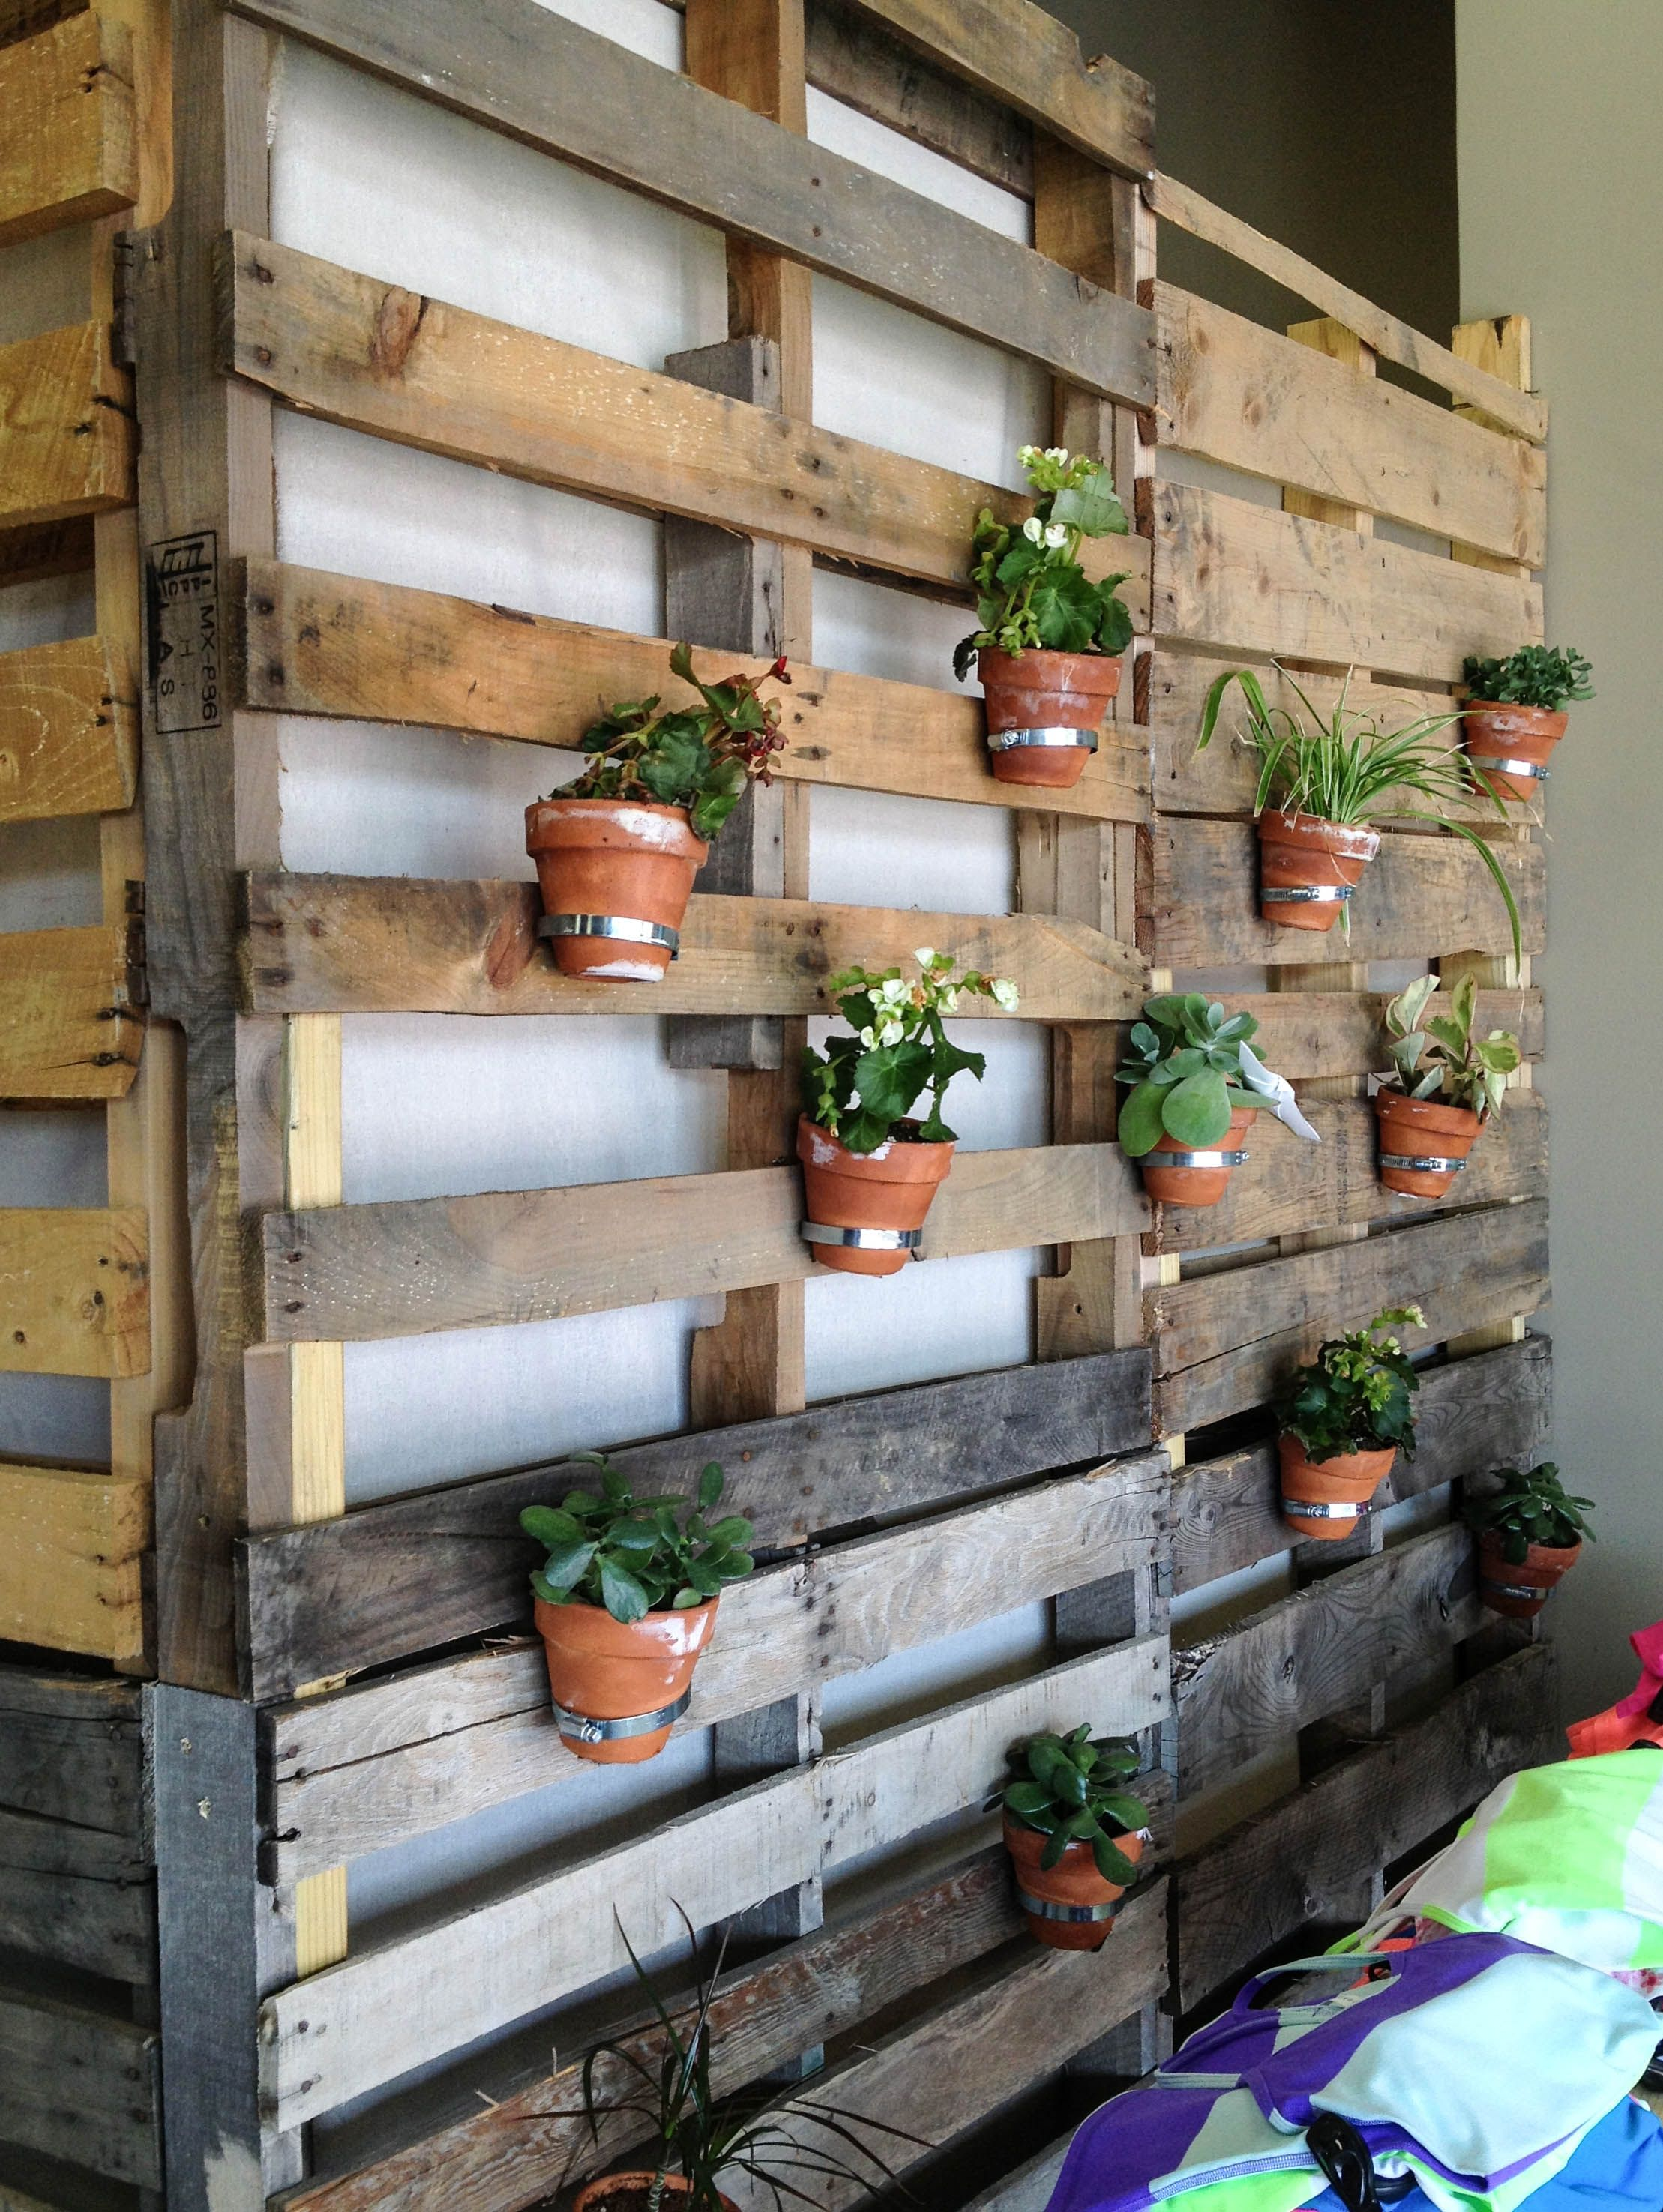 Pallet Wall Planter Spotted At Lululemon Athletica Des Moines Showroom Ia Planter Diy Planter Box Pallet Diy Wall Planter